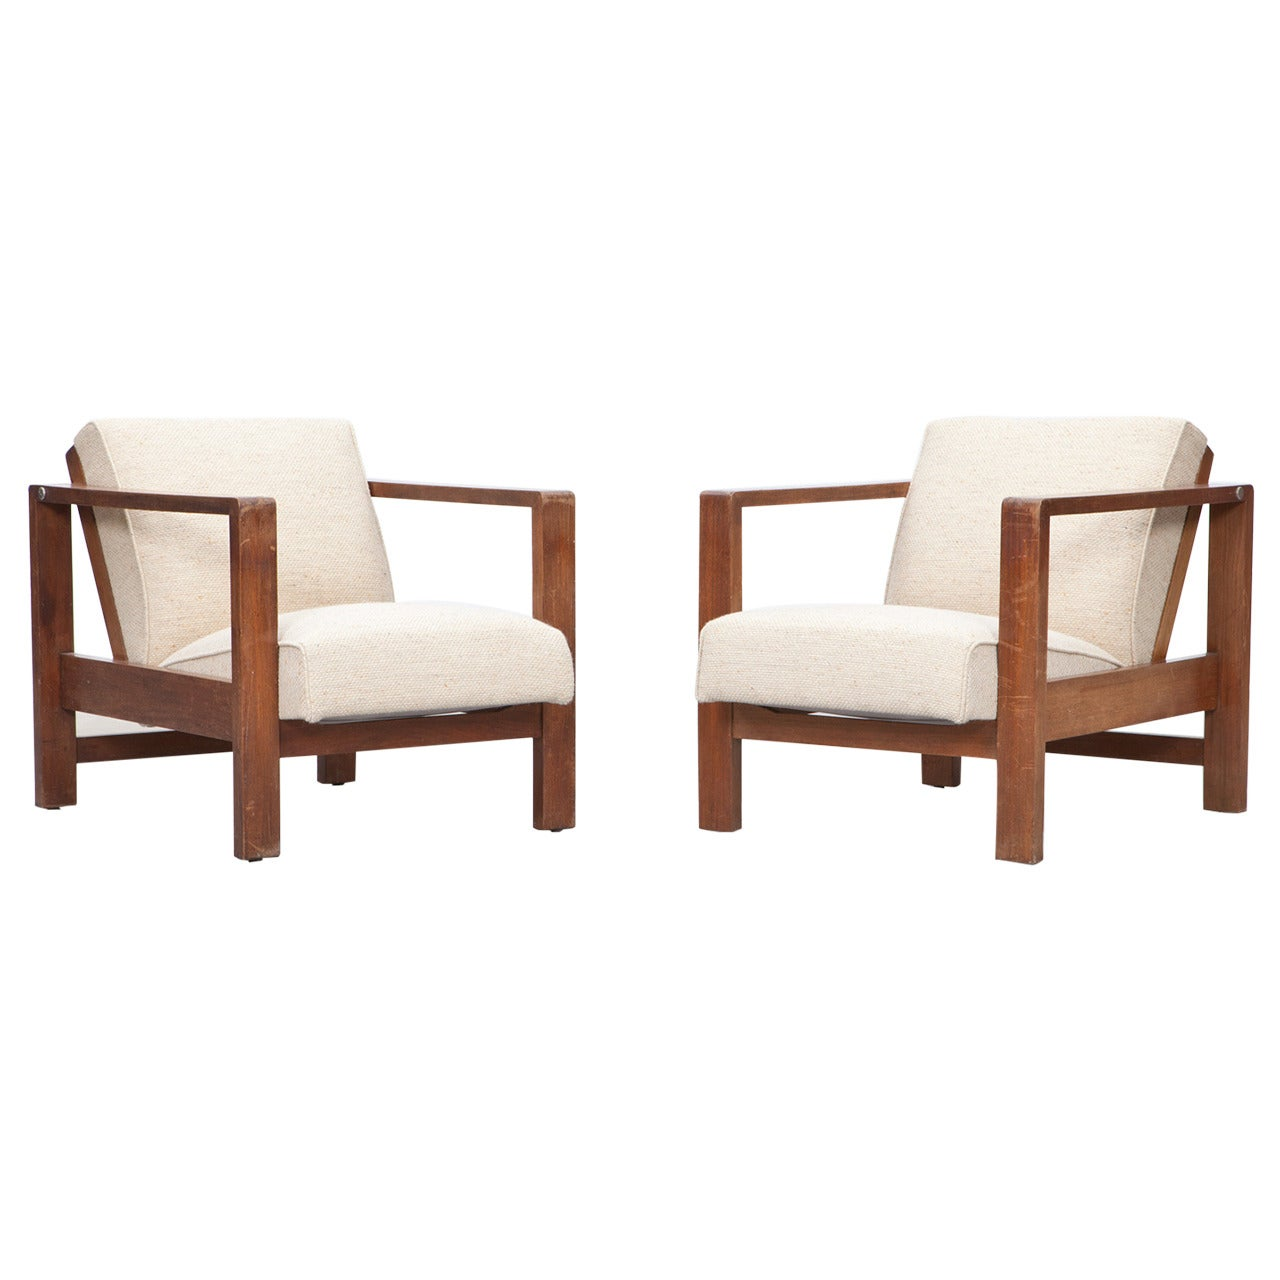 1920s brown oak, white upholstery Lounge Chairs by Erich Dieckmann